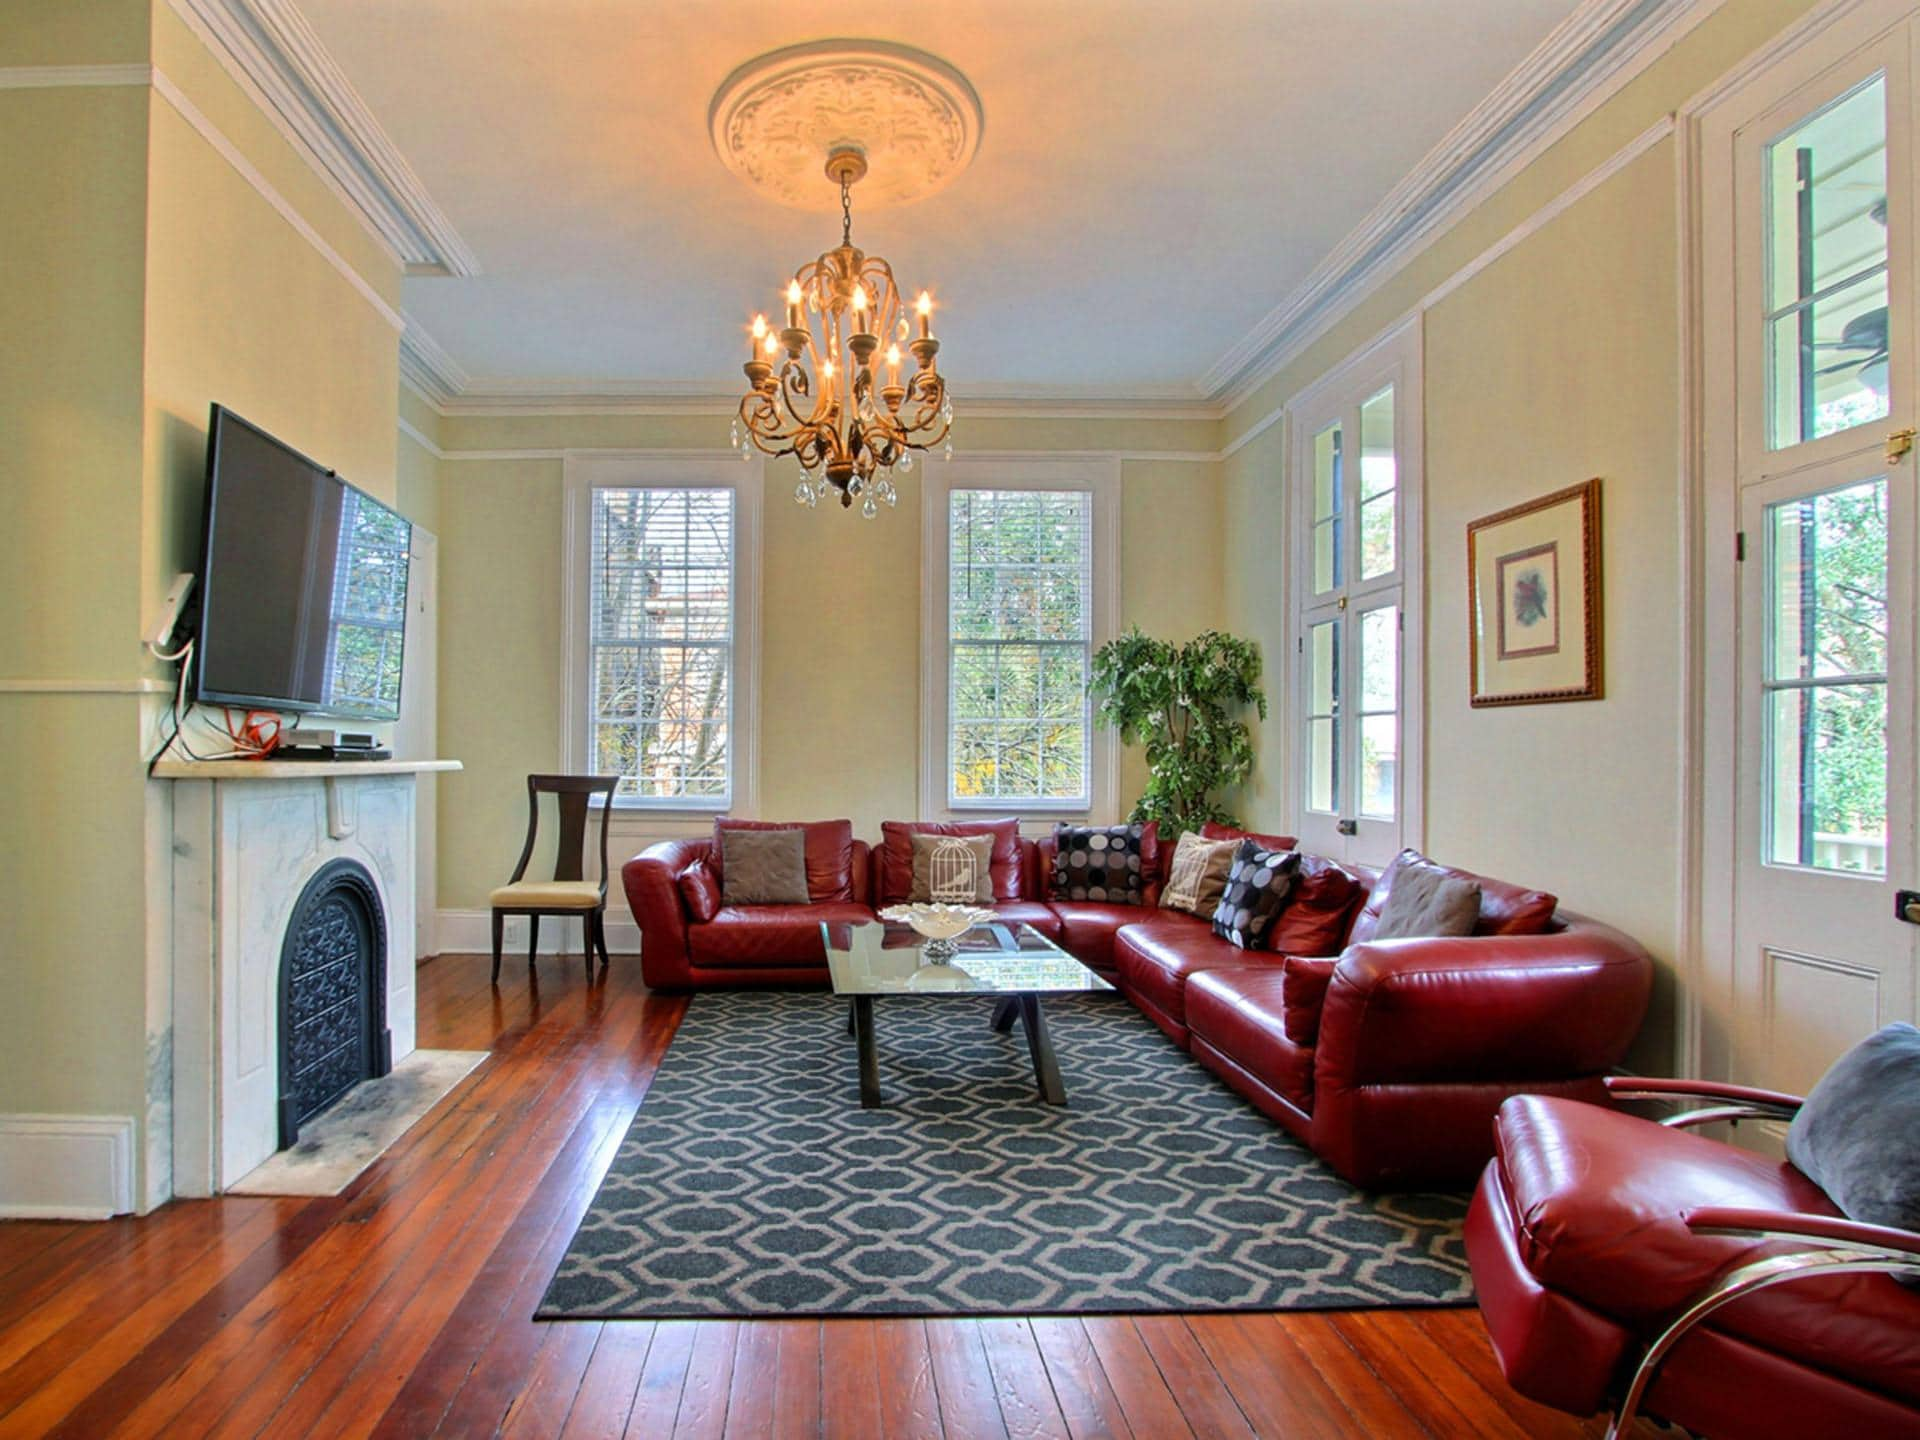 Property Image 1 - Beautiful Historic Home with Modern Amenities